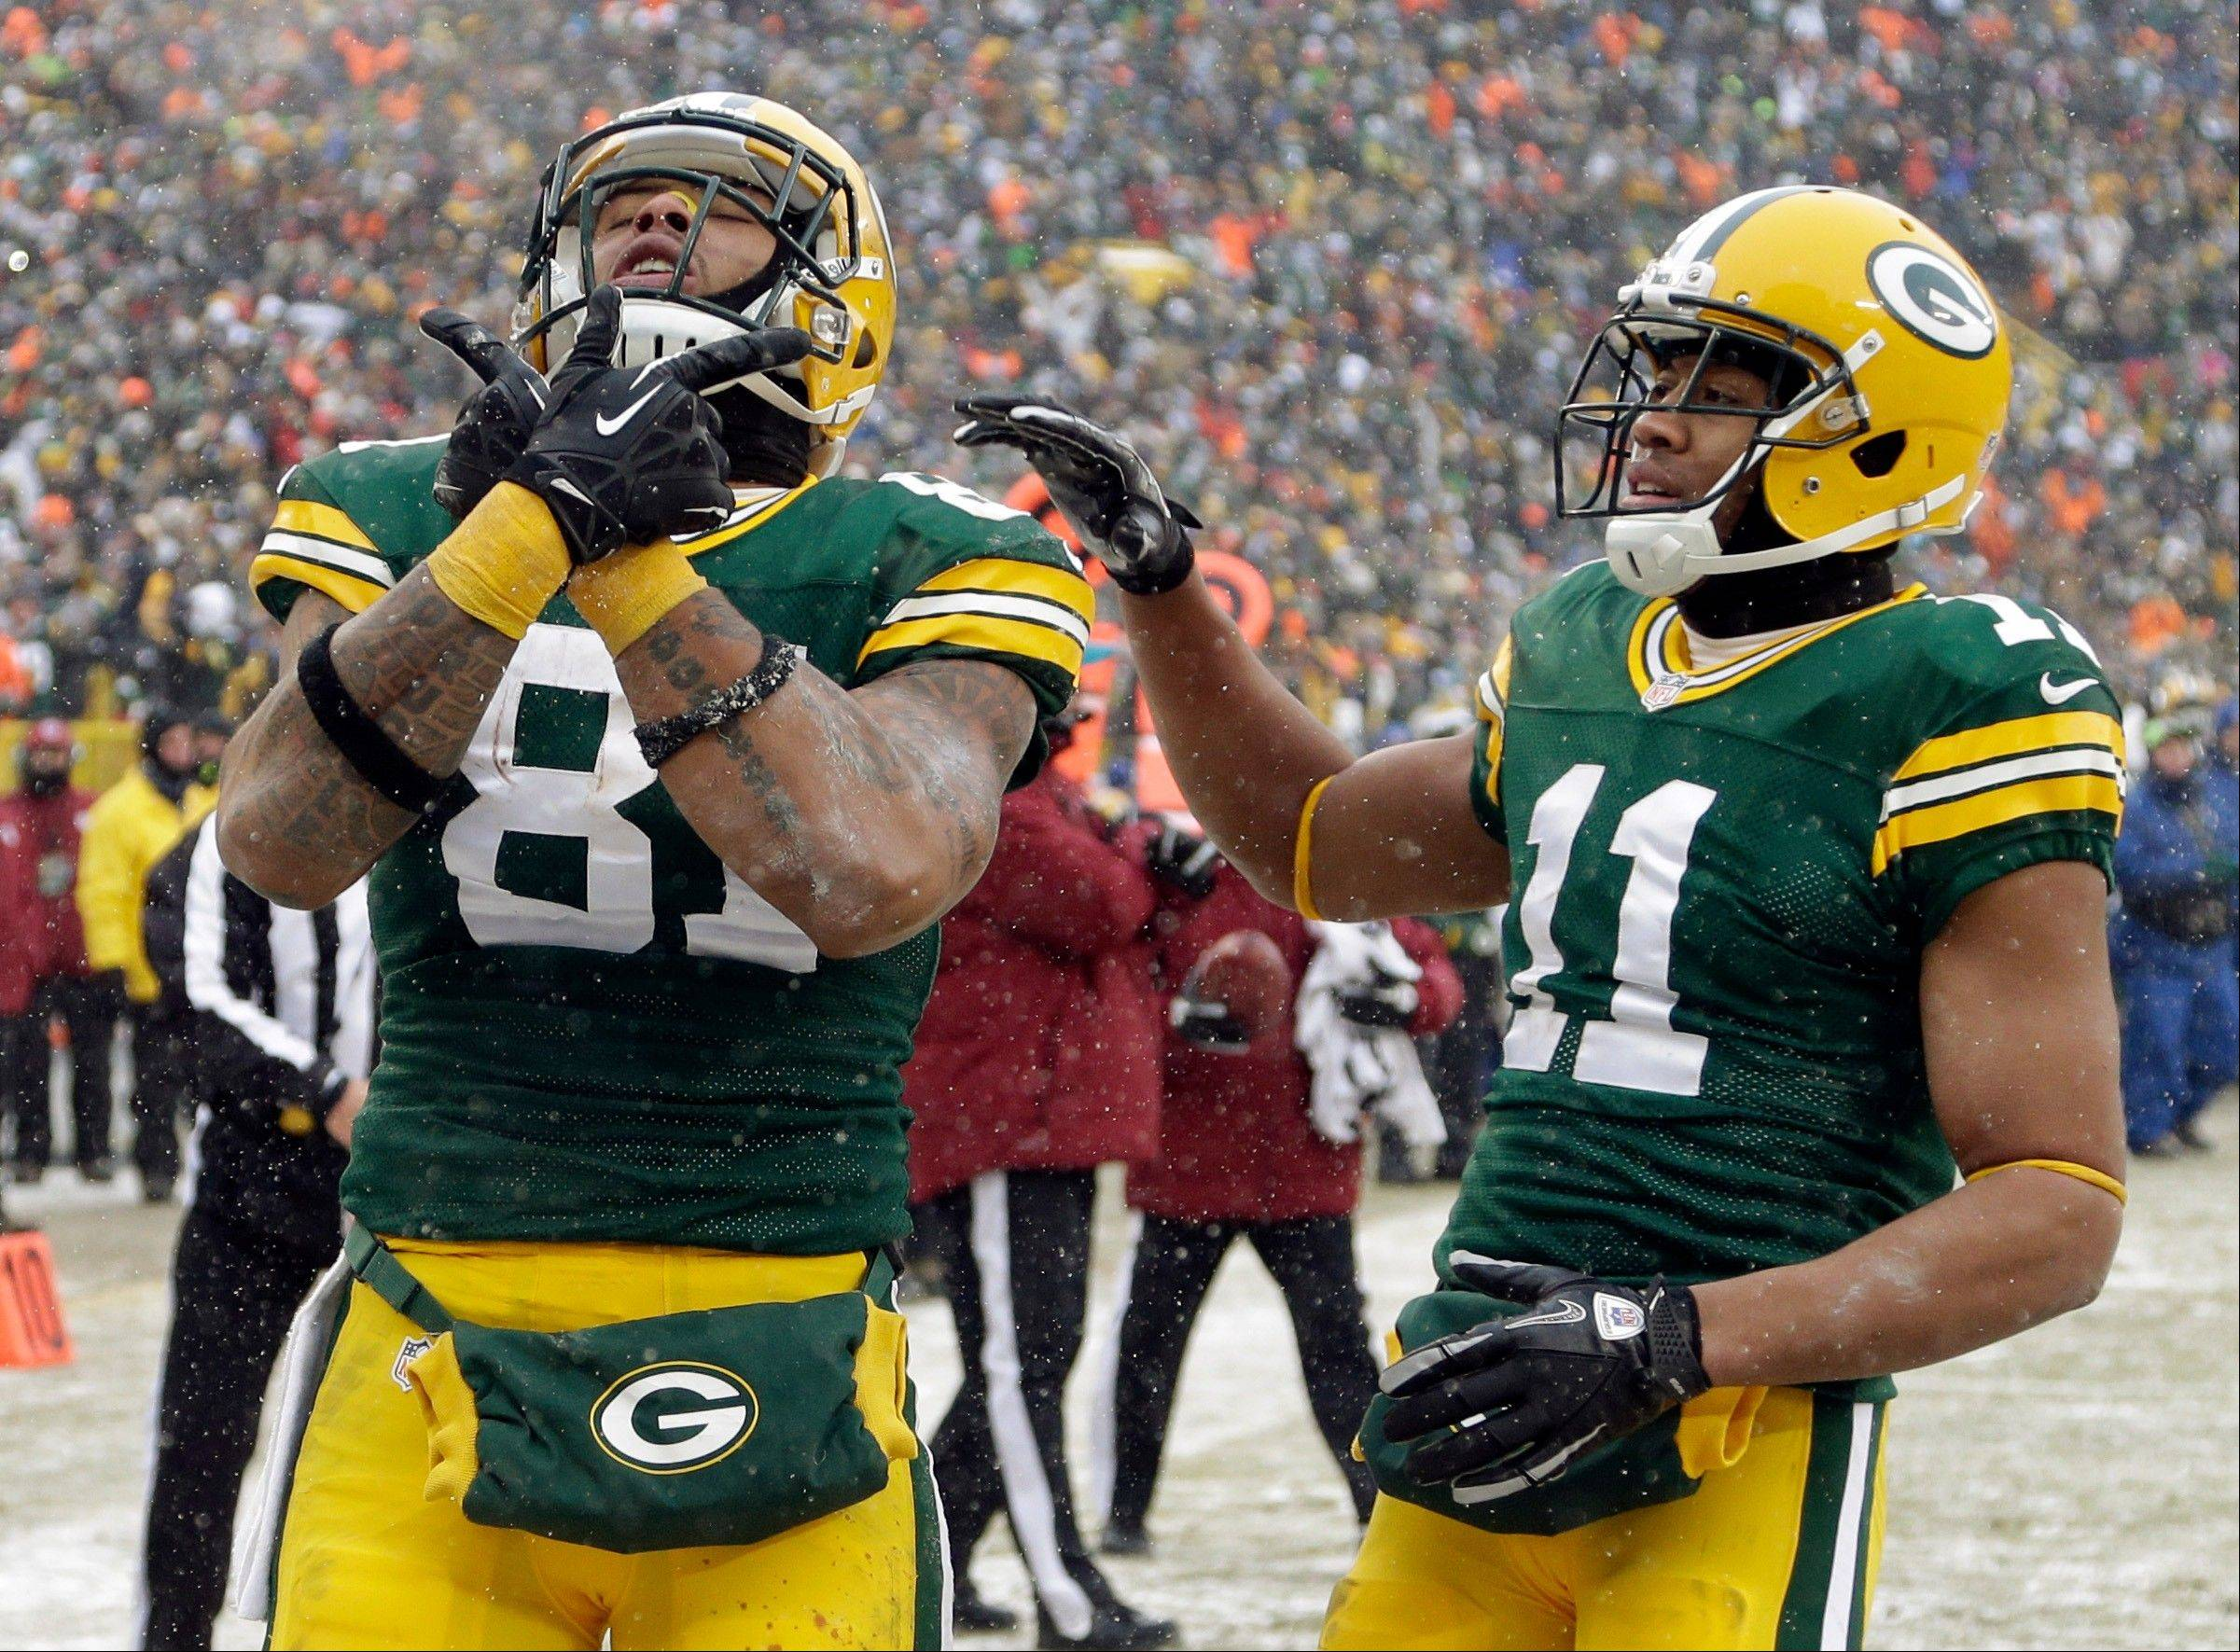 Green Bay Packers� Andrew Quarless (81) is congratulated by Jarrett Boykin (11) after catching a touchdown pass during the second half of an NFL football game against the Atlanta Falcons Sunday, Dec. 8, 2013, in Green Bay, Wis.